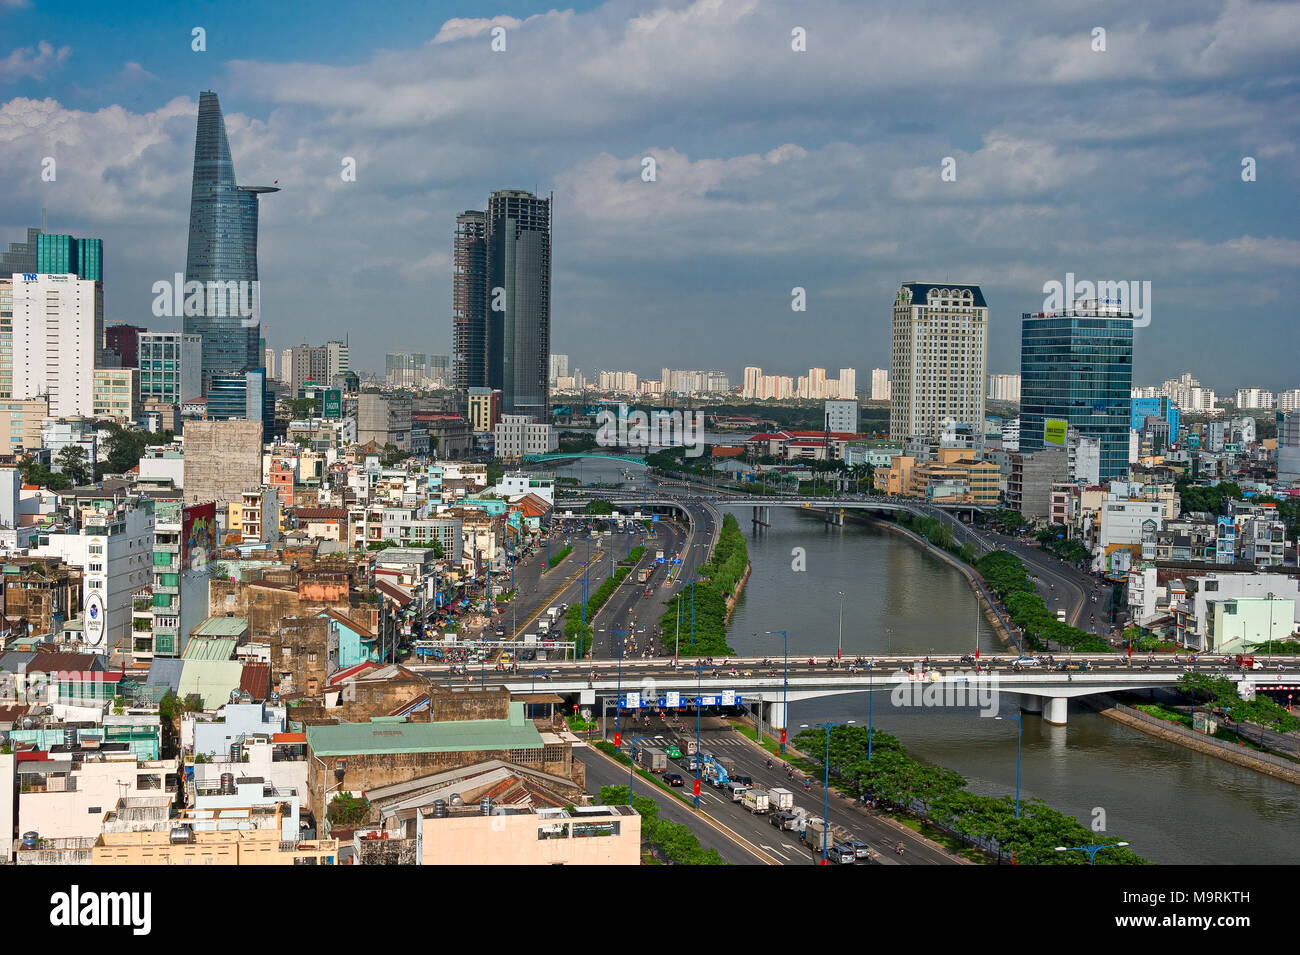 HO CHI MINH CITY, VIETNAM - APRIL 9, 2017: The sun sets over the Ho Chi Minh City skyline that mix the colonial and business district in Vietnam large Stock Photo